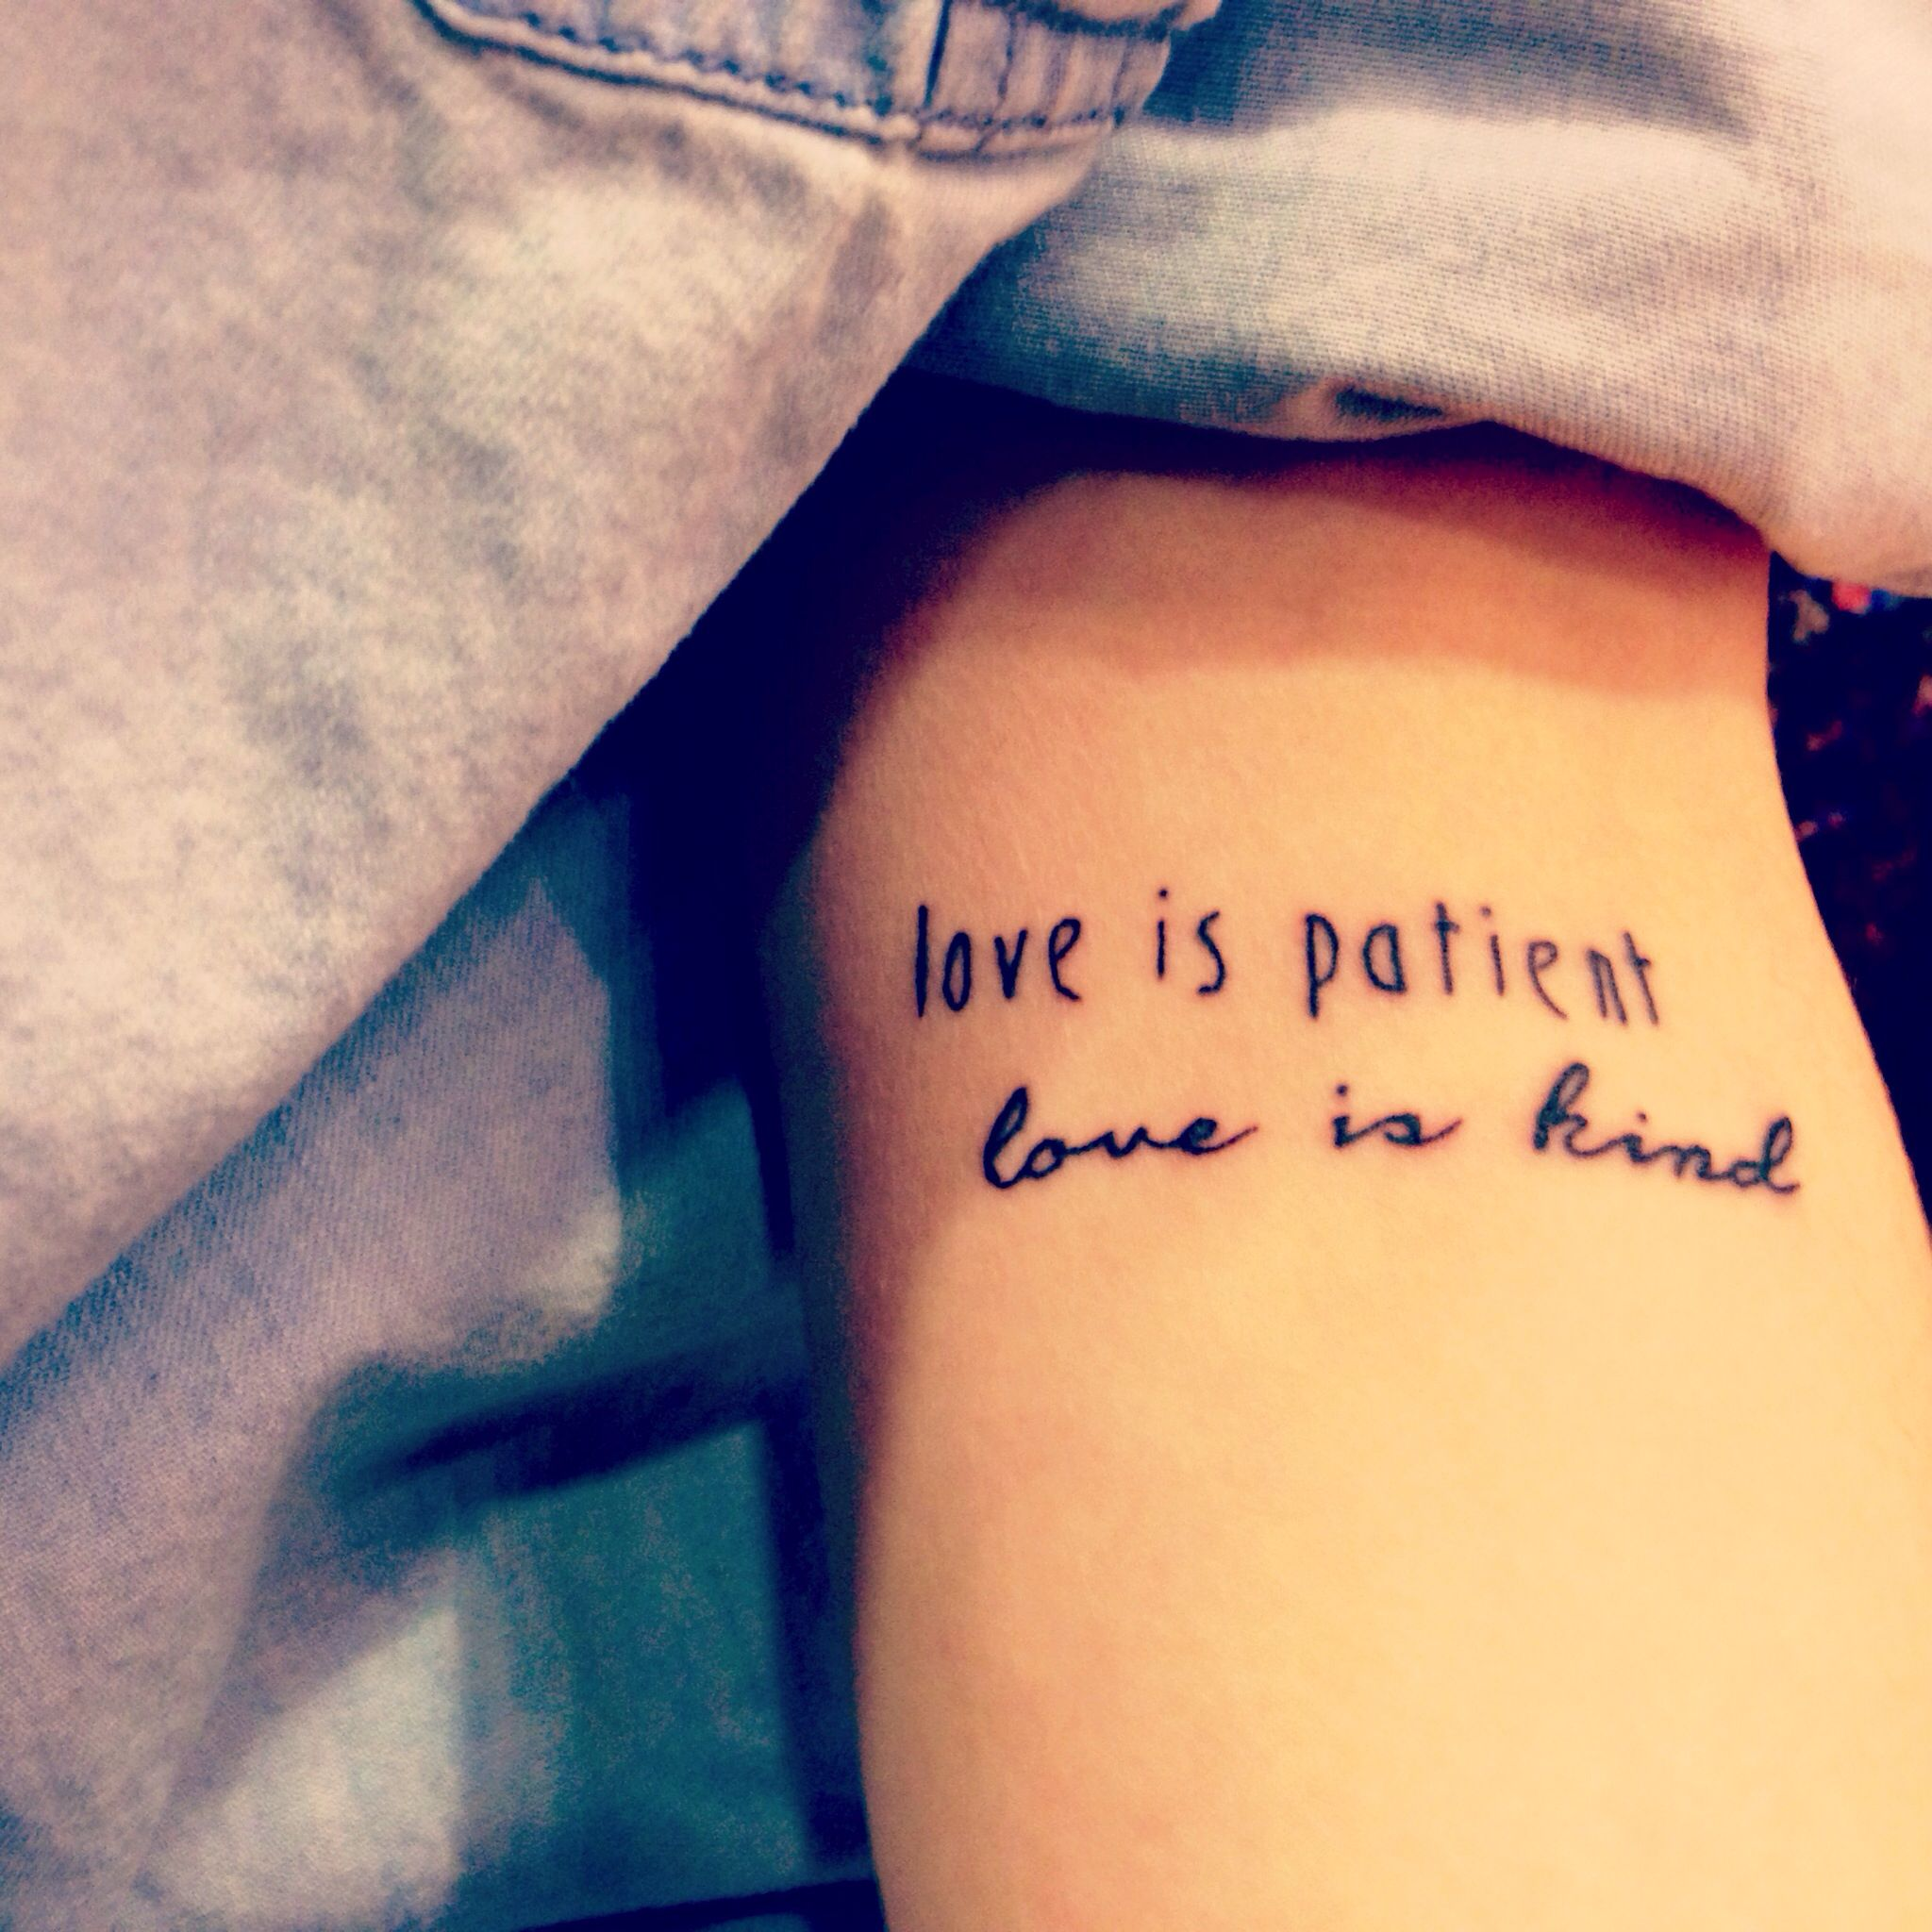 1 Corinthians 13 Tattoo Love Is Patient Love Is Kind Ideas And Designs